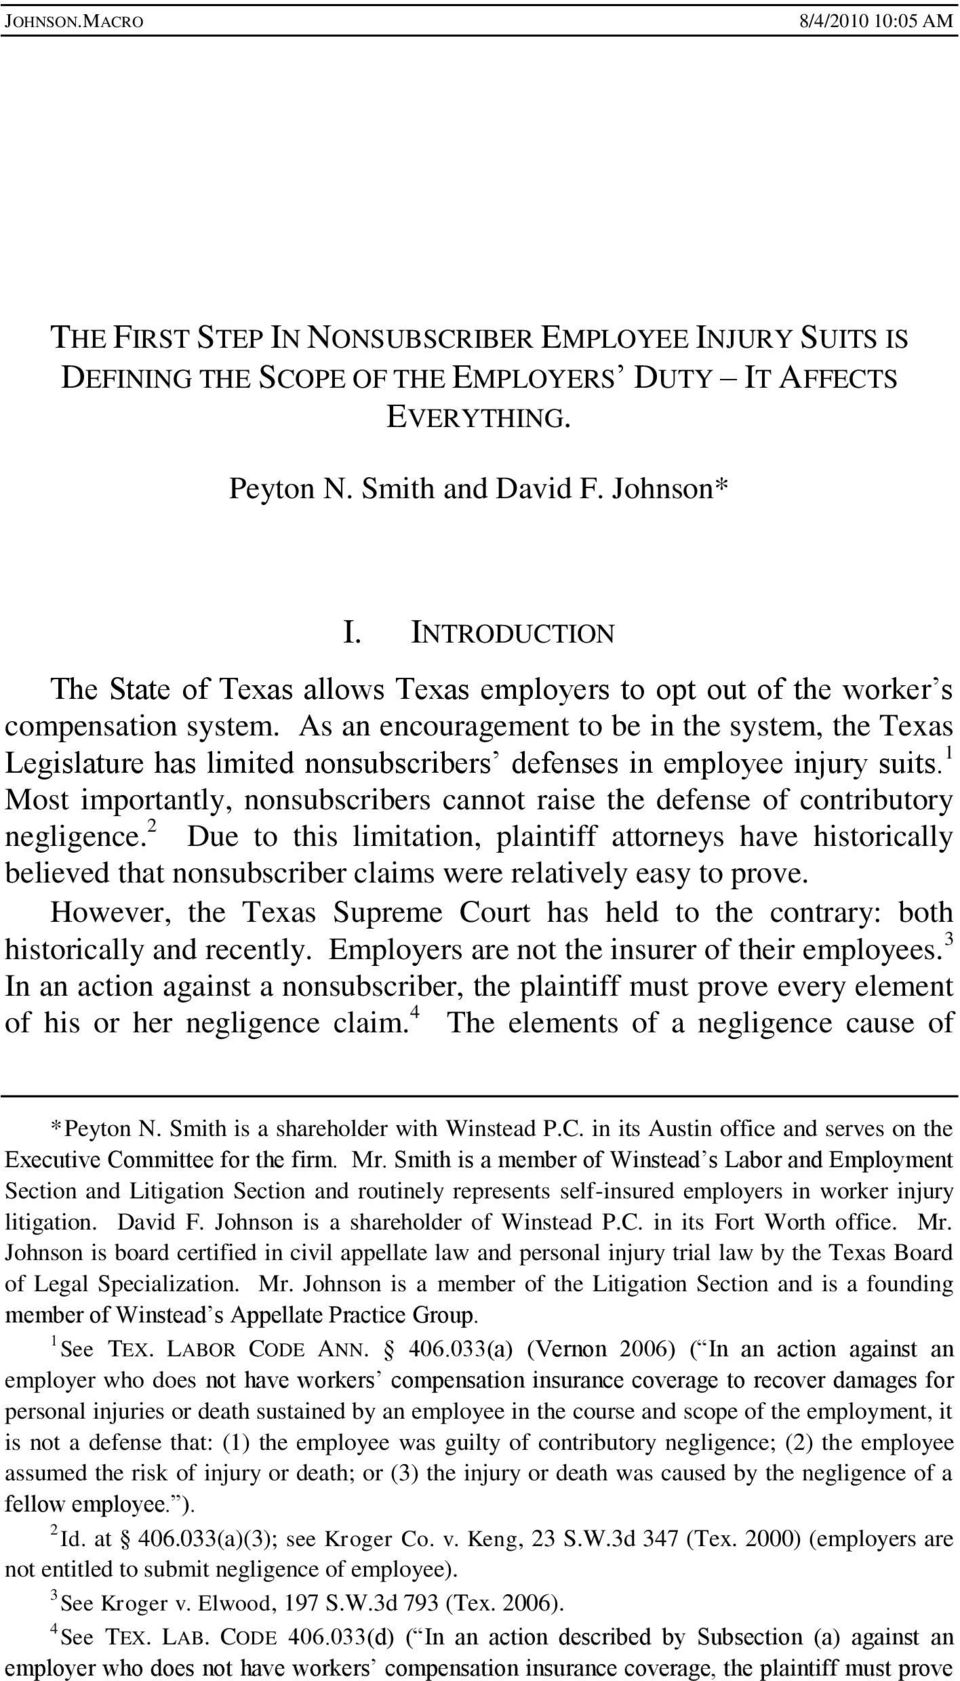 As an encouragement to be in the system, the Texas Legislature has limited nonsubscribers defenses in employee injury suits.